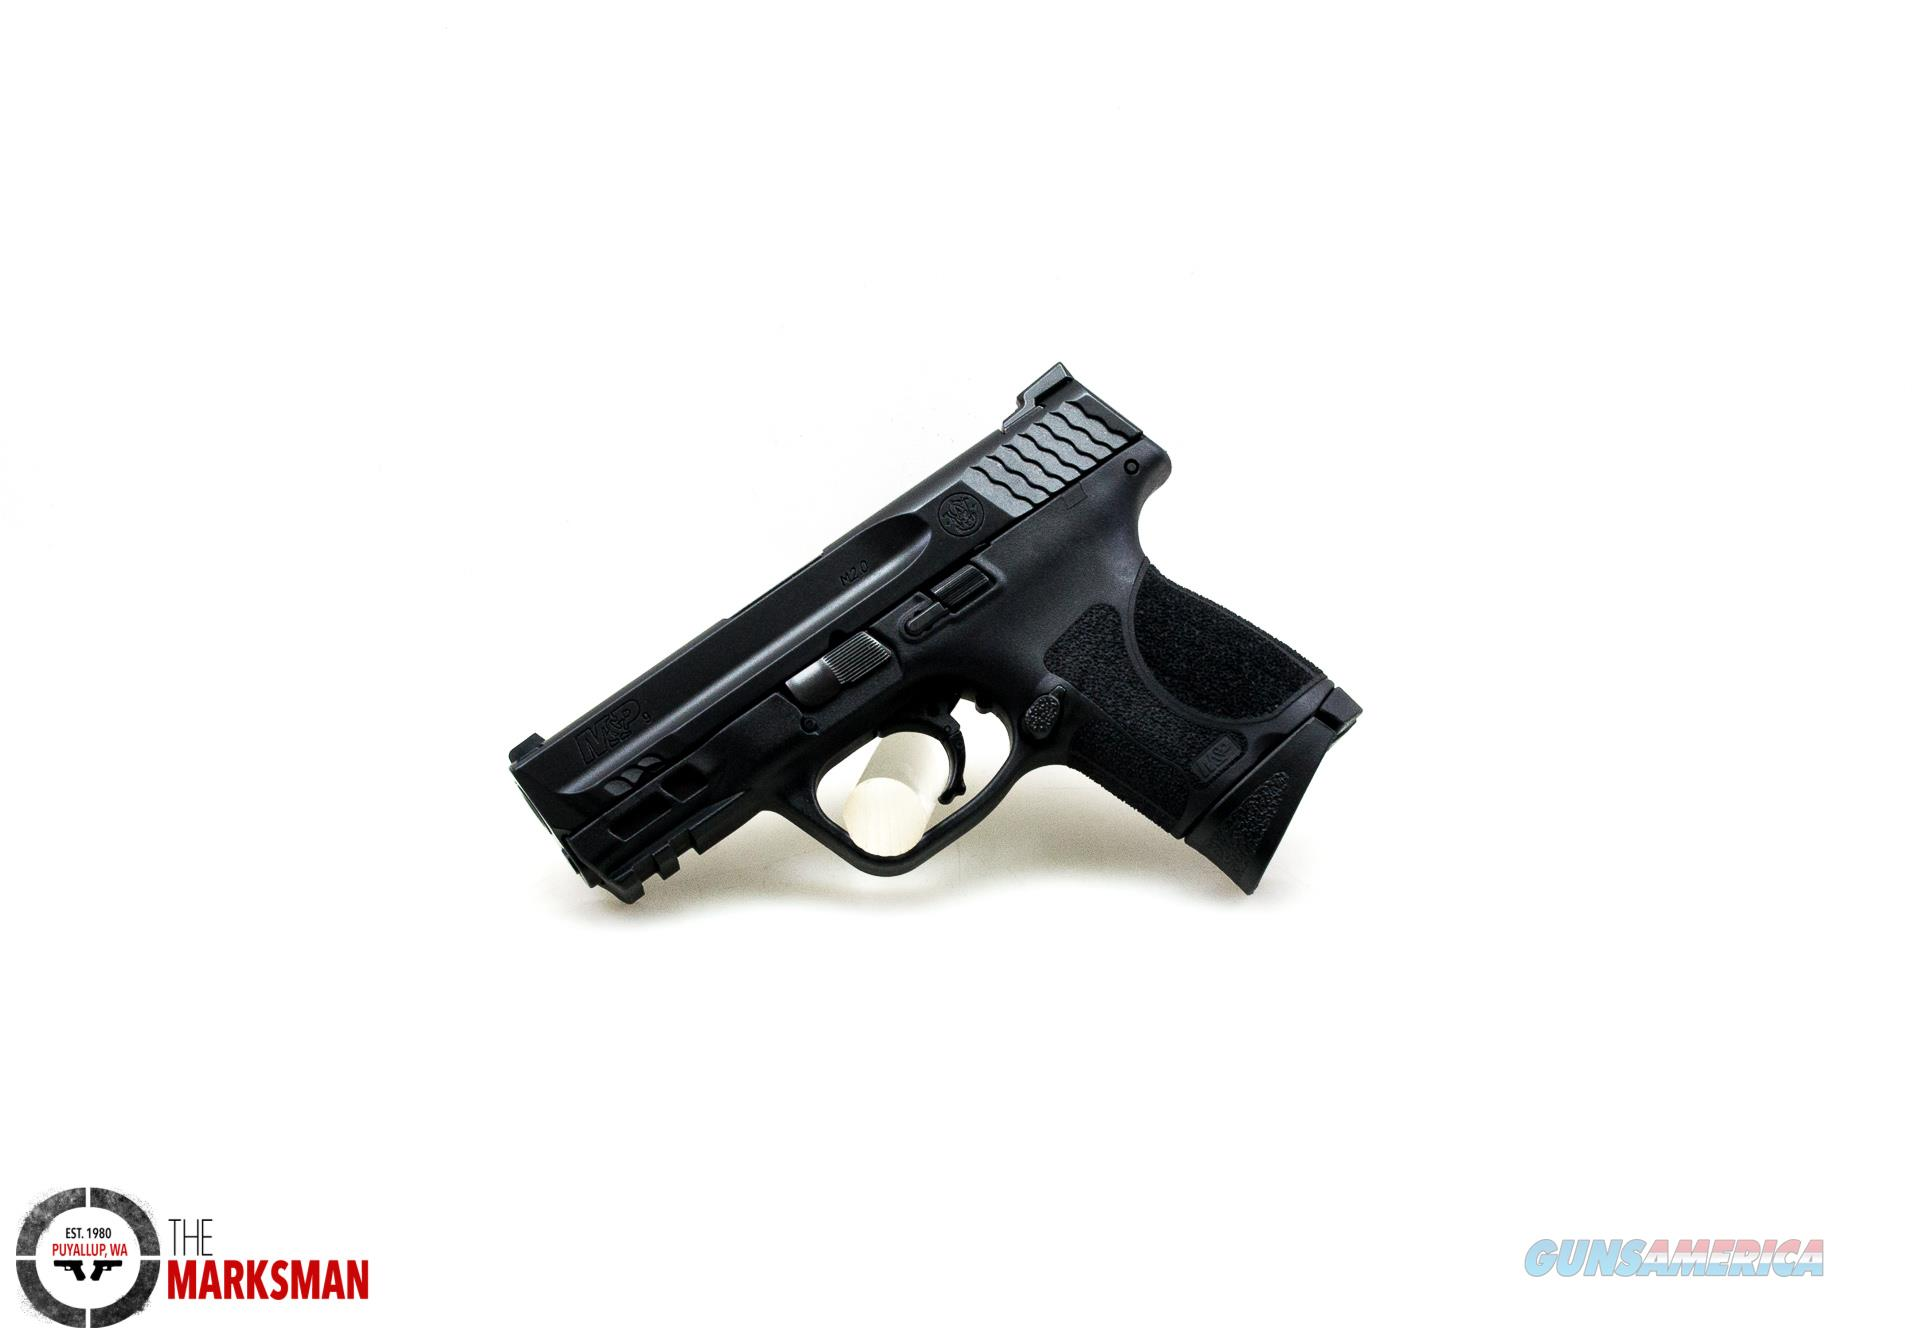 Smith and Wesson M&P9 M2.0 Subcompact, 9mm NEW 12481  Guns > Pistols > Smith & Wesson Pistols - Autos > Polymer Frame